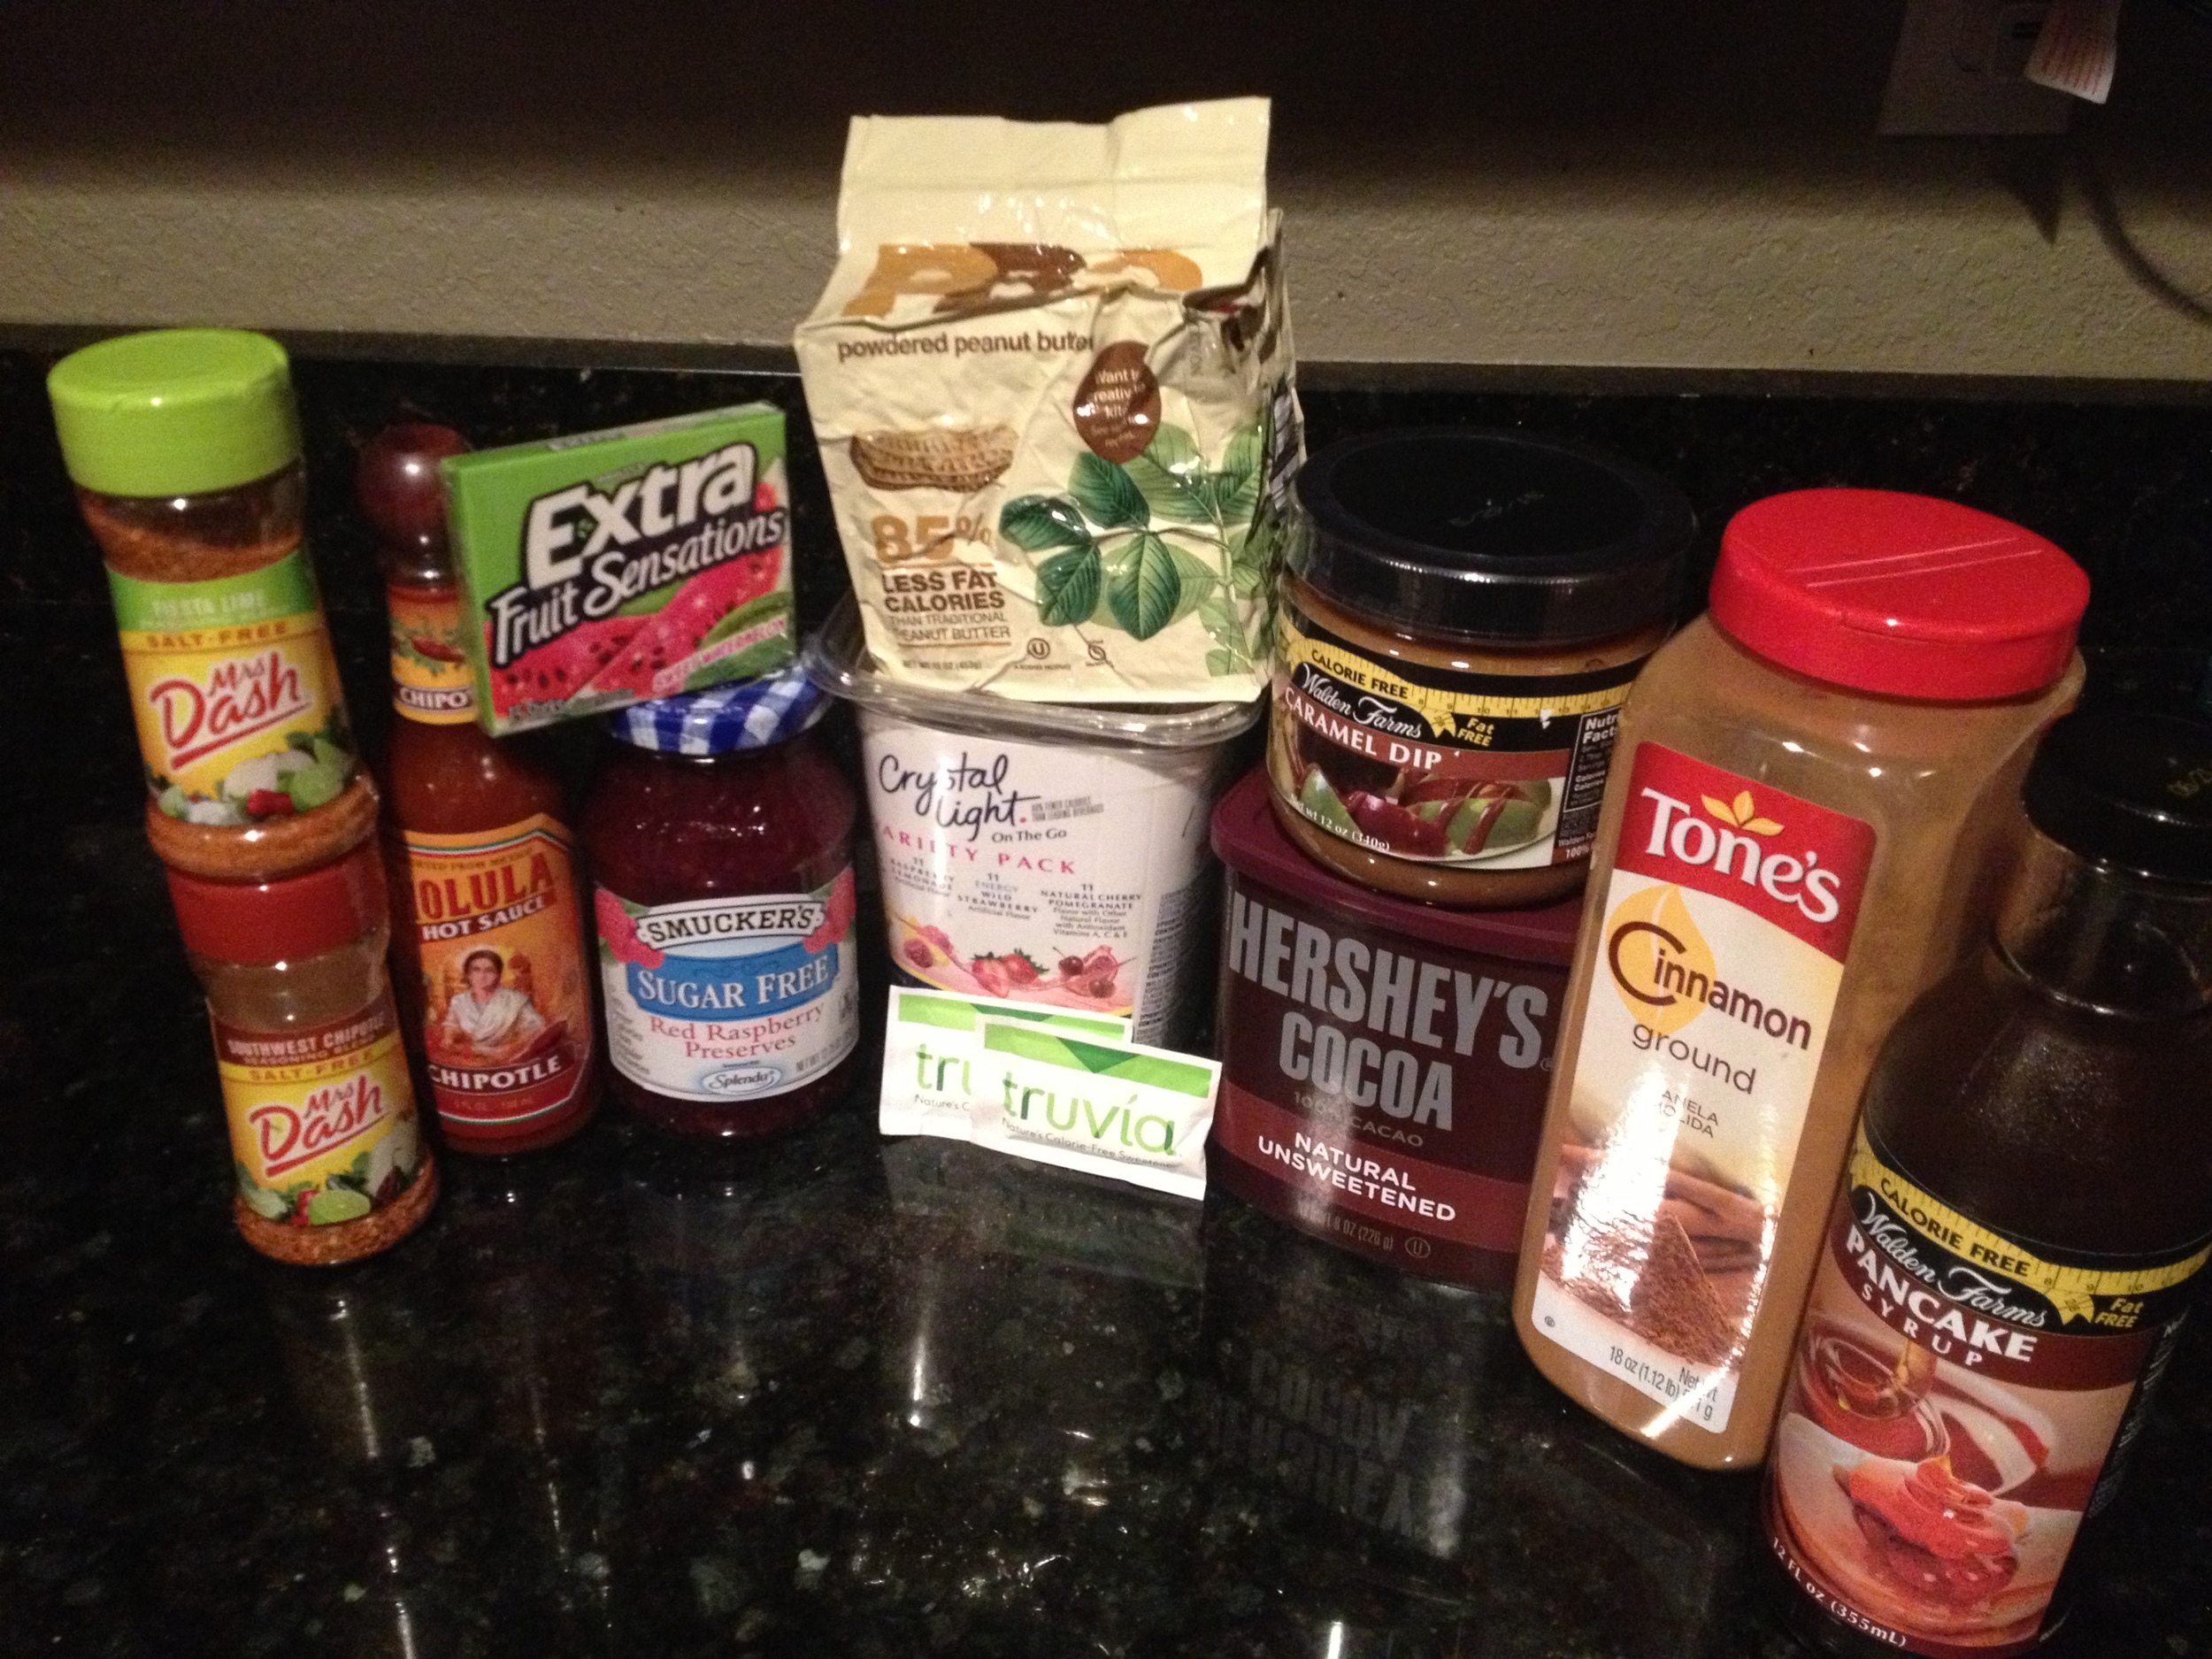 A few miscellaneous goodies that help me stick to eating clean. Feed the taste buds!